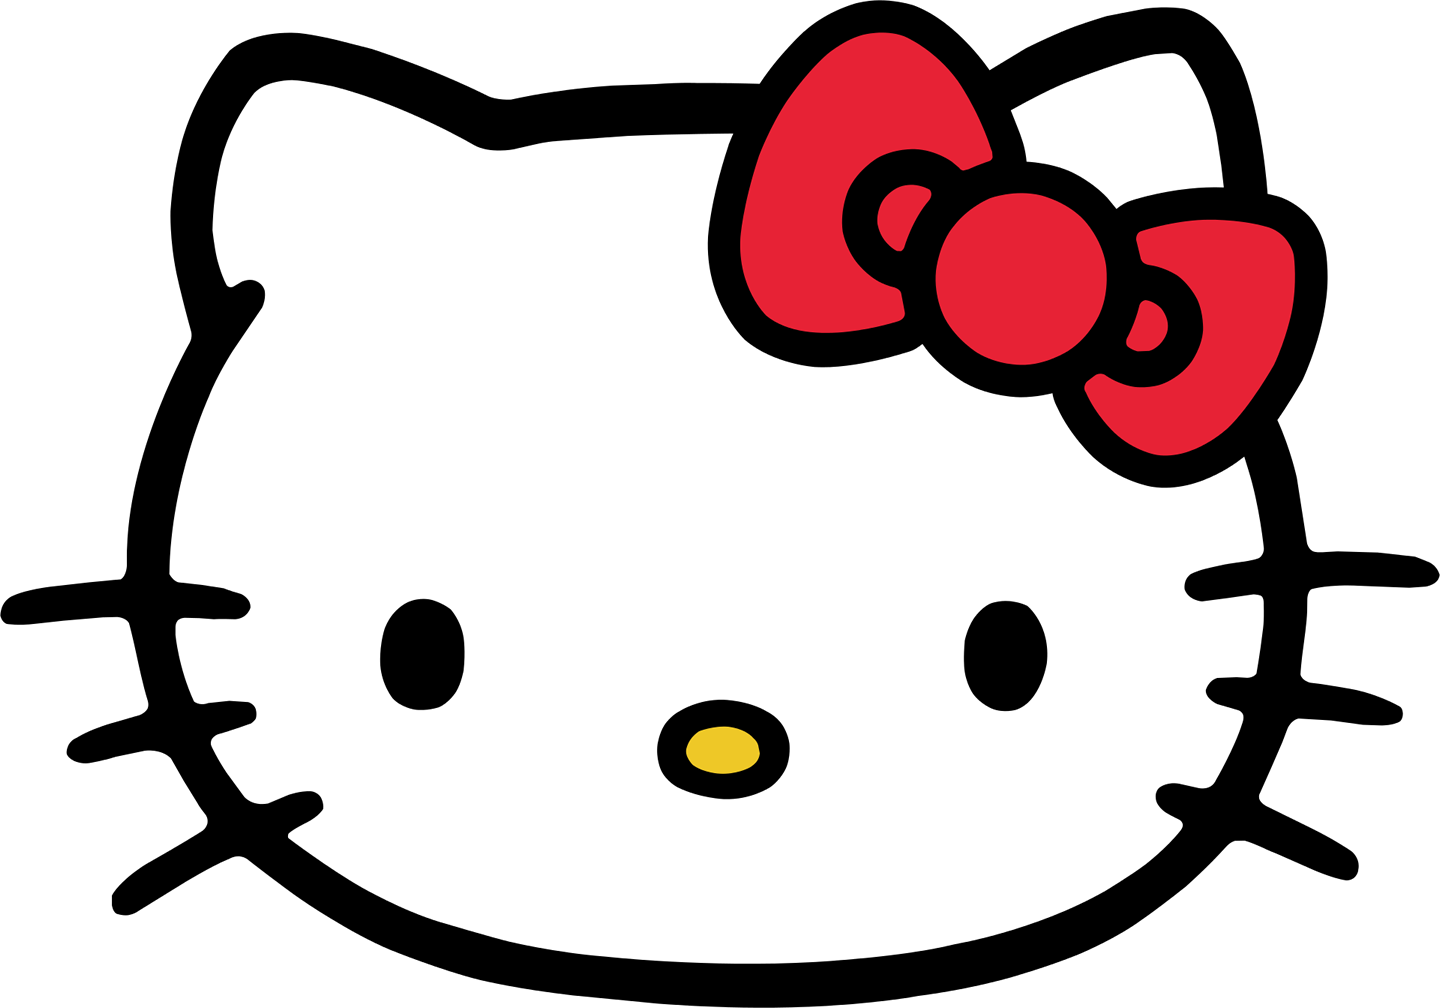 Kitty transparent flower. Hello face png image